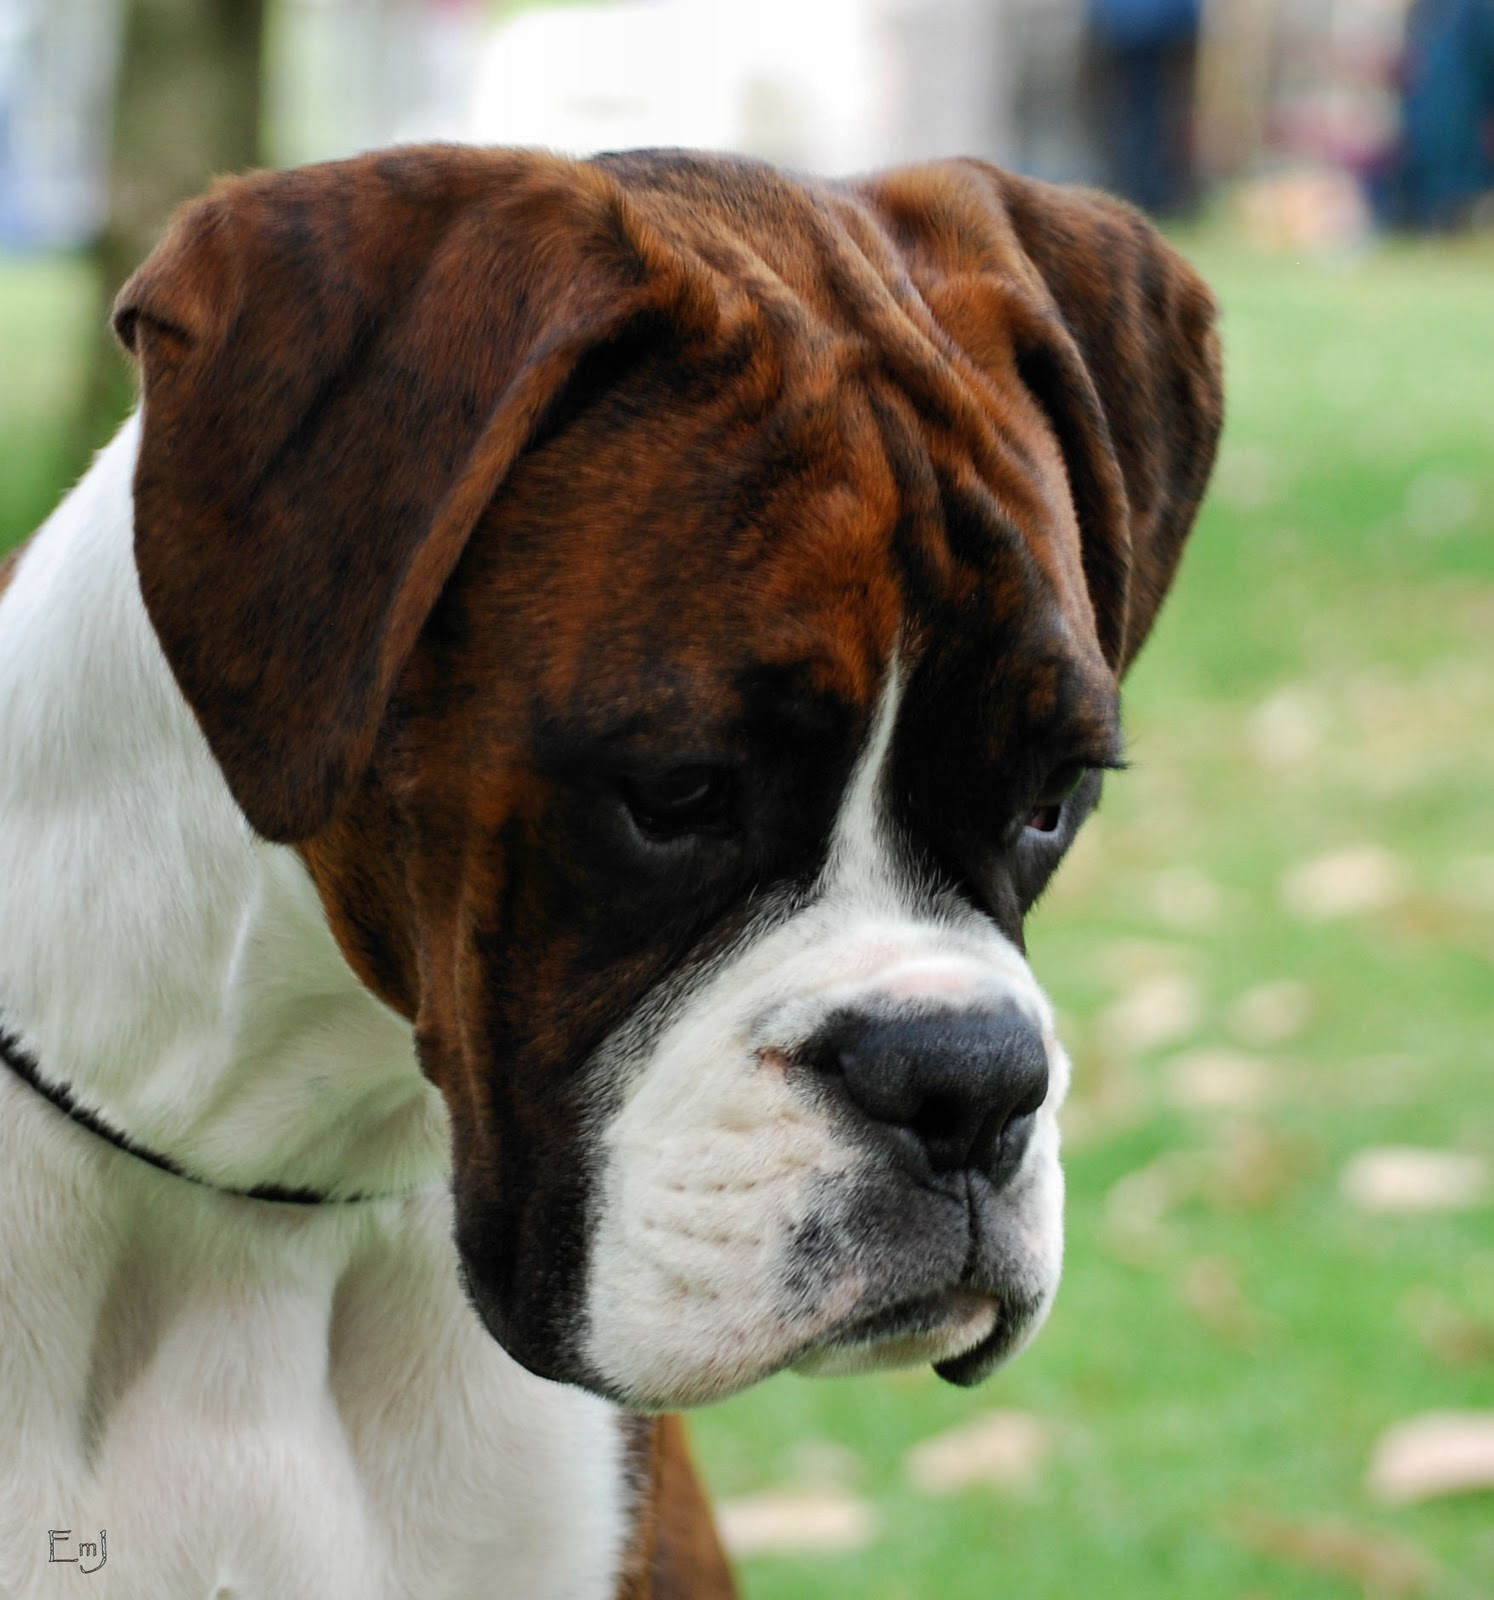 Cute Puppies Wallpaper Backgrounds The Dog Hd Wallpapers Sad Boxer Dog Hd Wallpaper